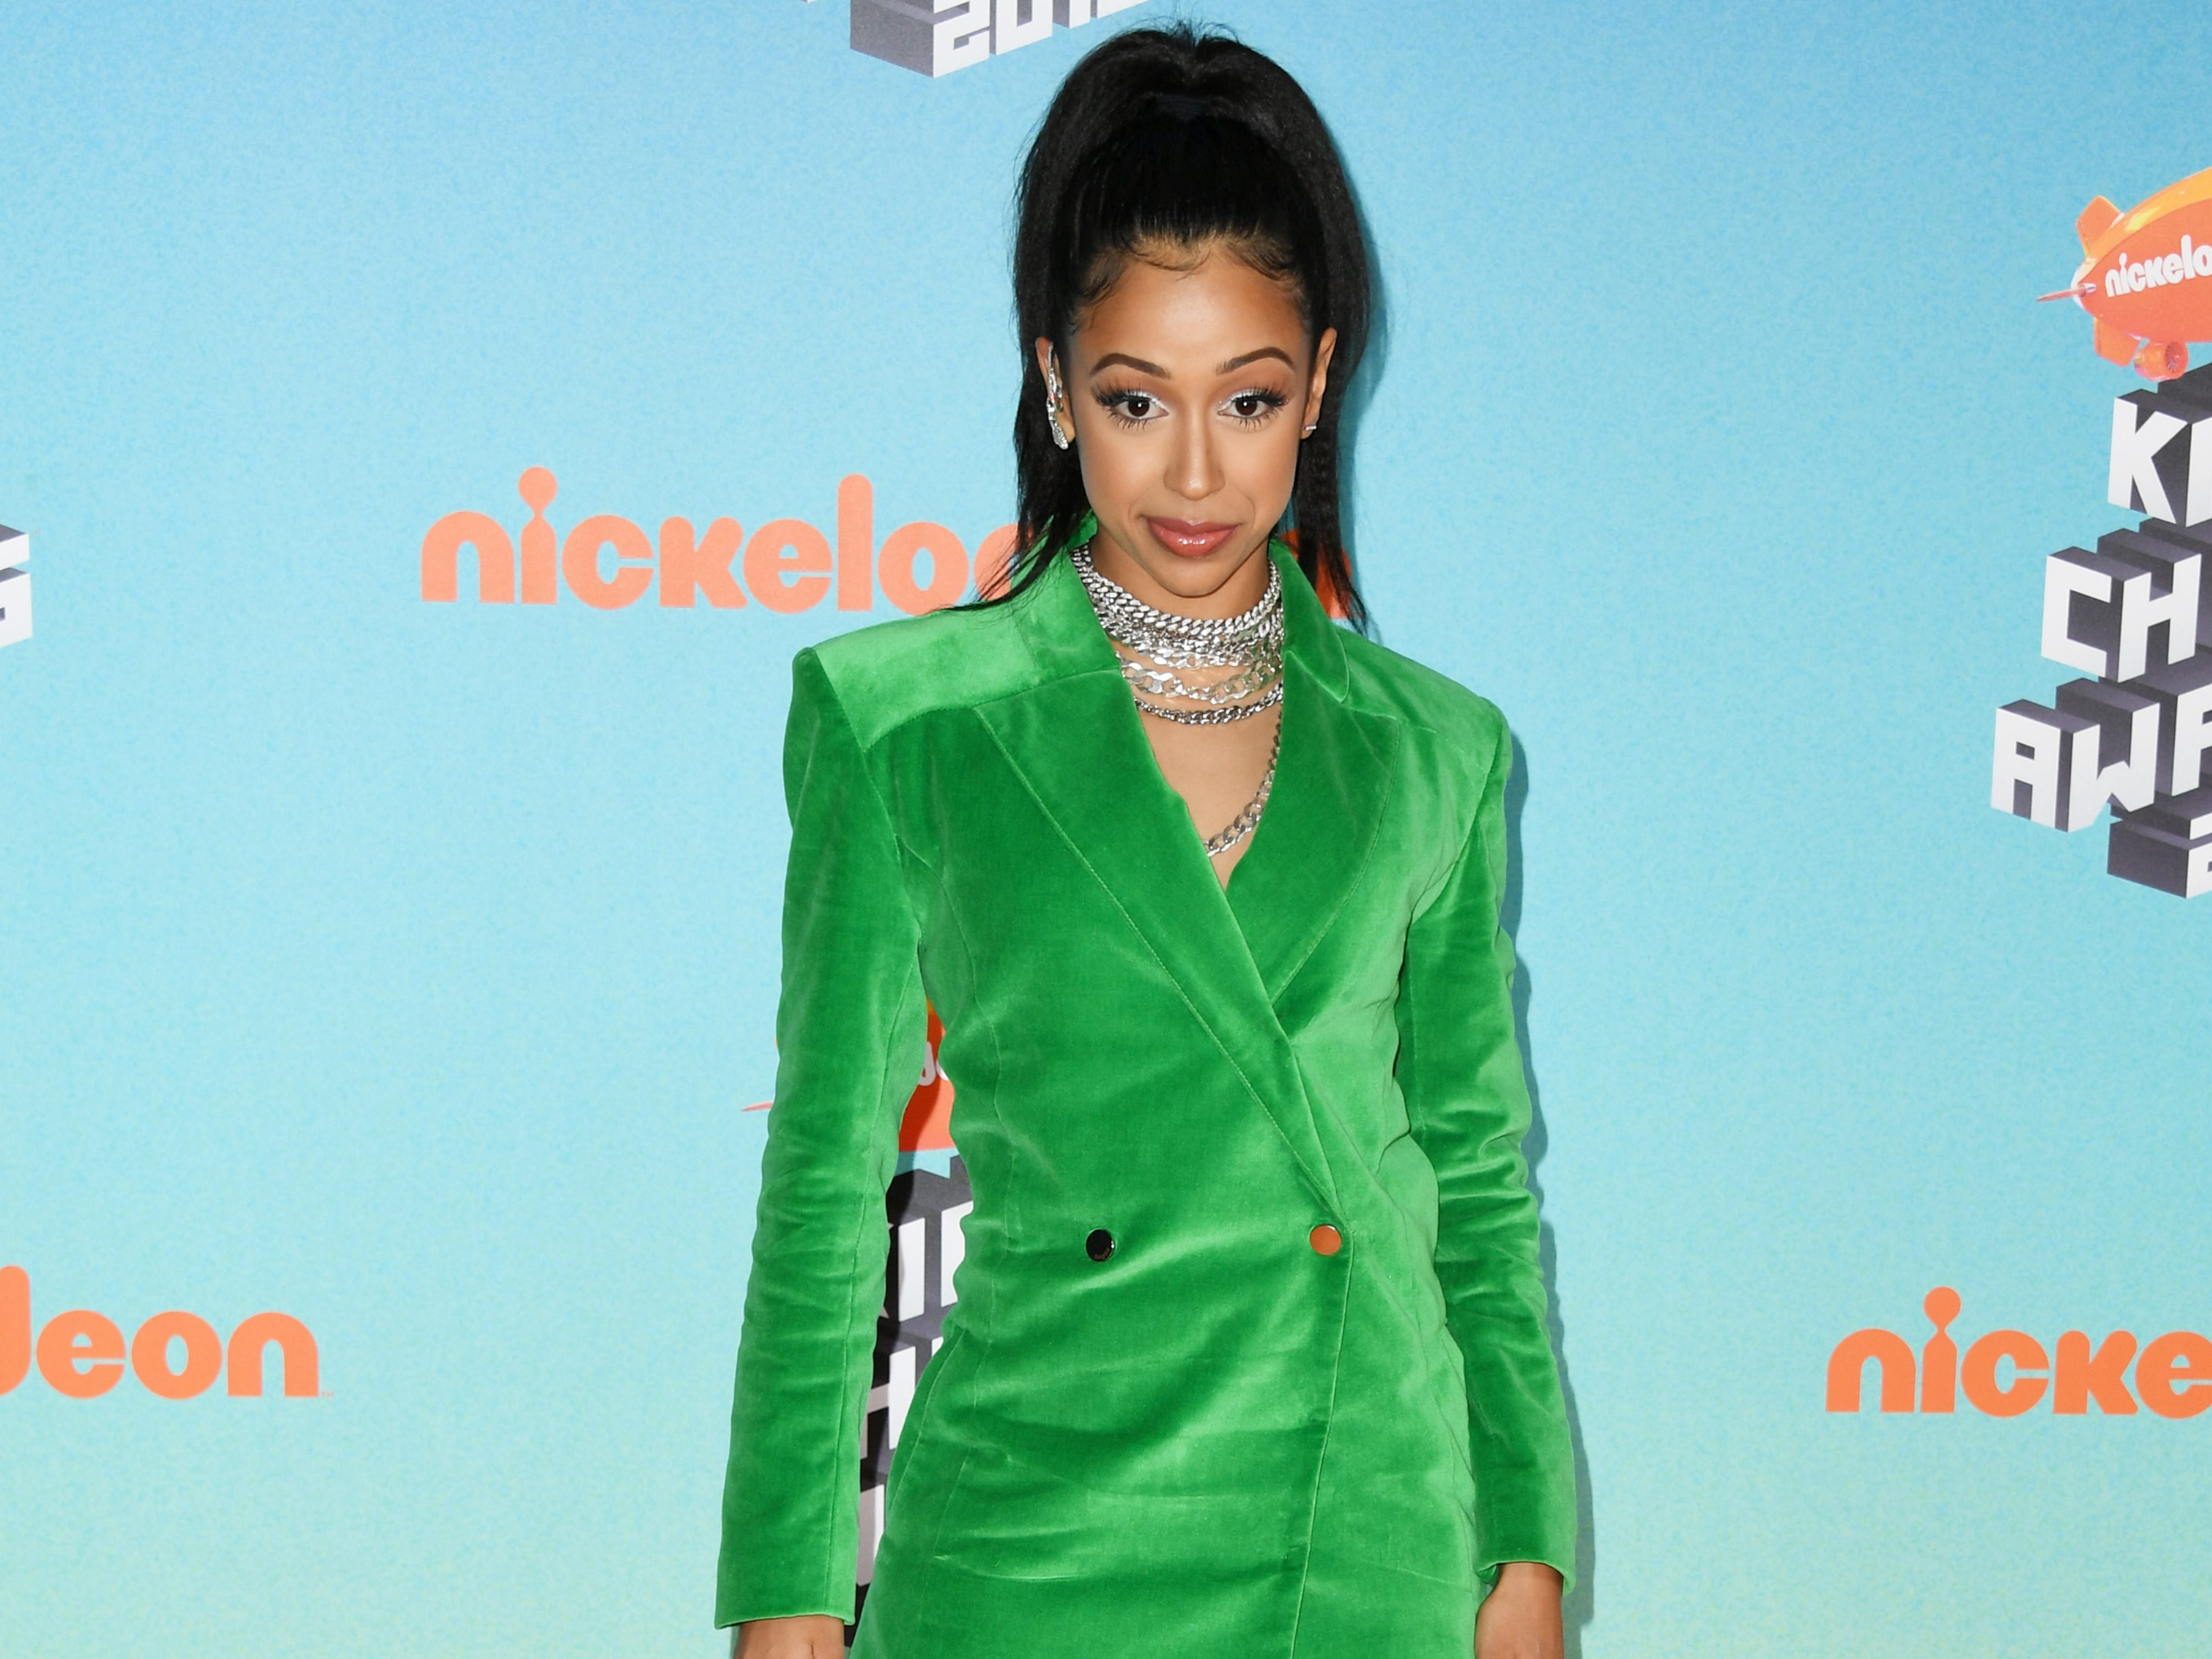 LOS ANGELES, CA - MARCH 23:  Liza Koshy attends Nickelodeon's 2019 Kids' Choice Awards at Galen Center on March 23, 2019 in Los Angeles, California.  (Photo by Jon Kopaloff/Getty Images) ORG XMIT: 775314636 ORIG FILE ID: 1132376476